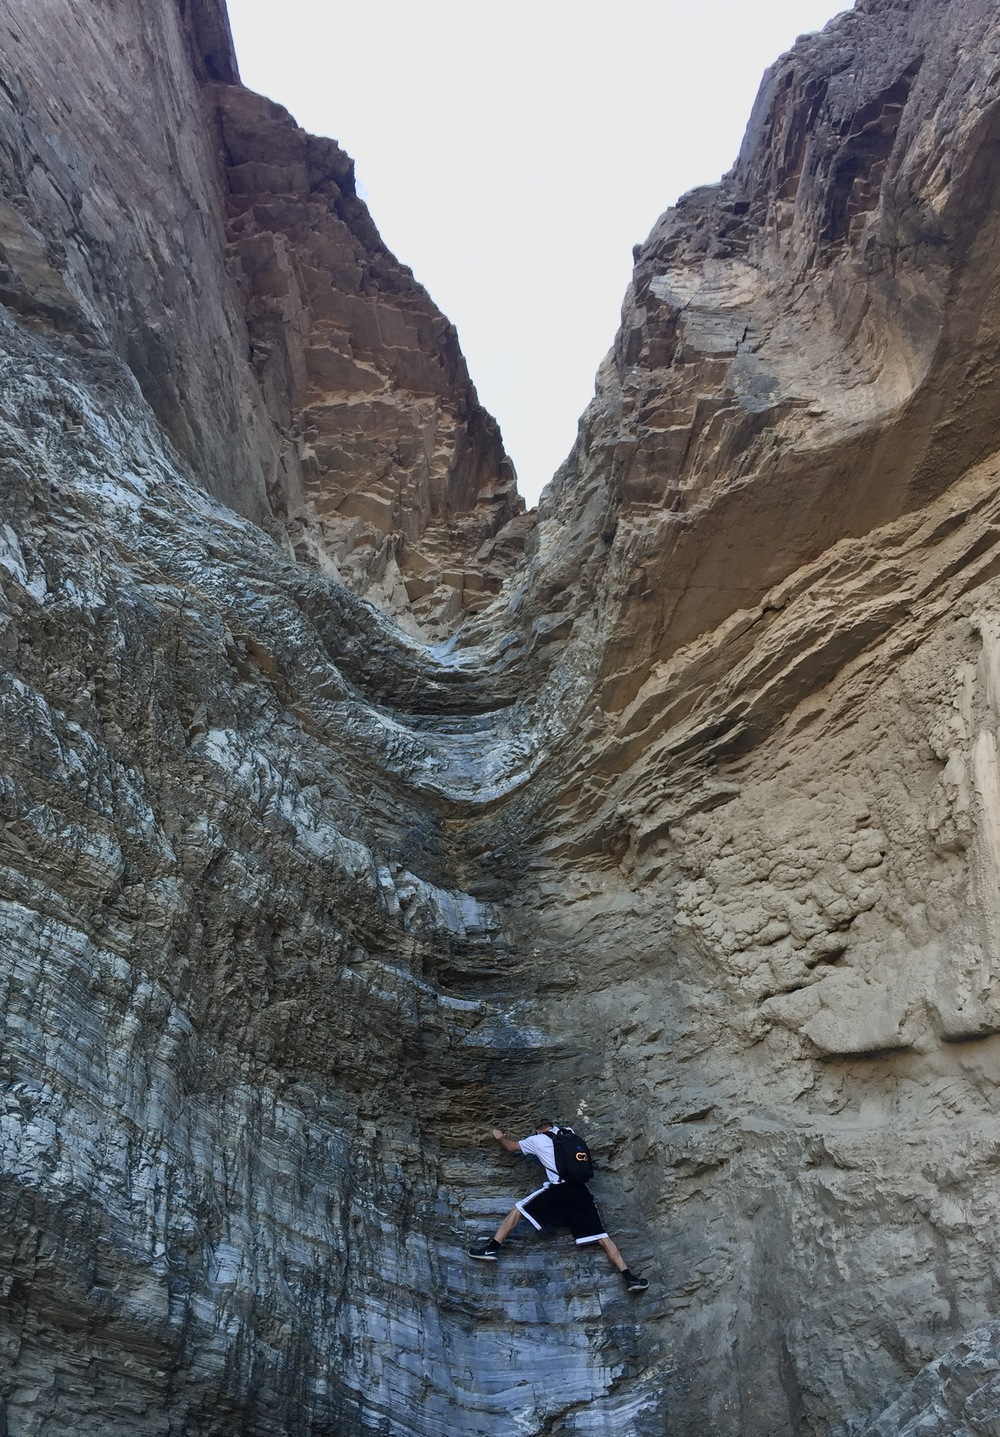 Where we had to turn around at Mosaic Canyon.